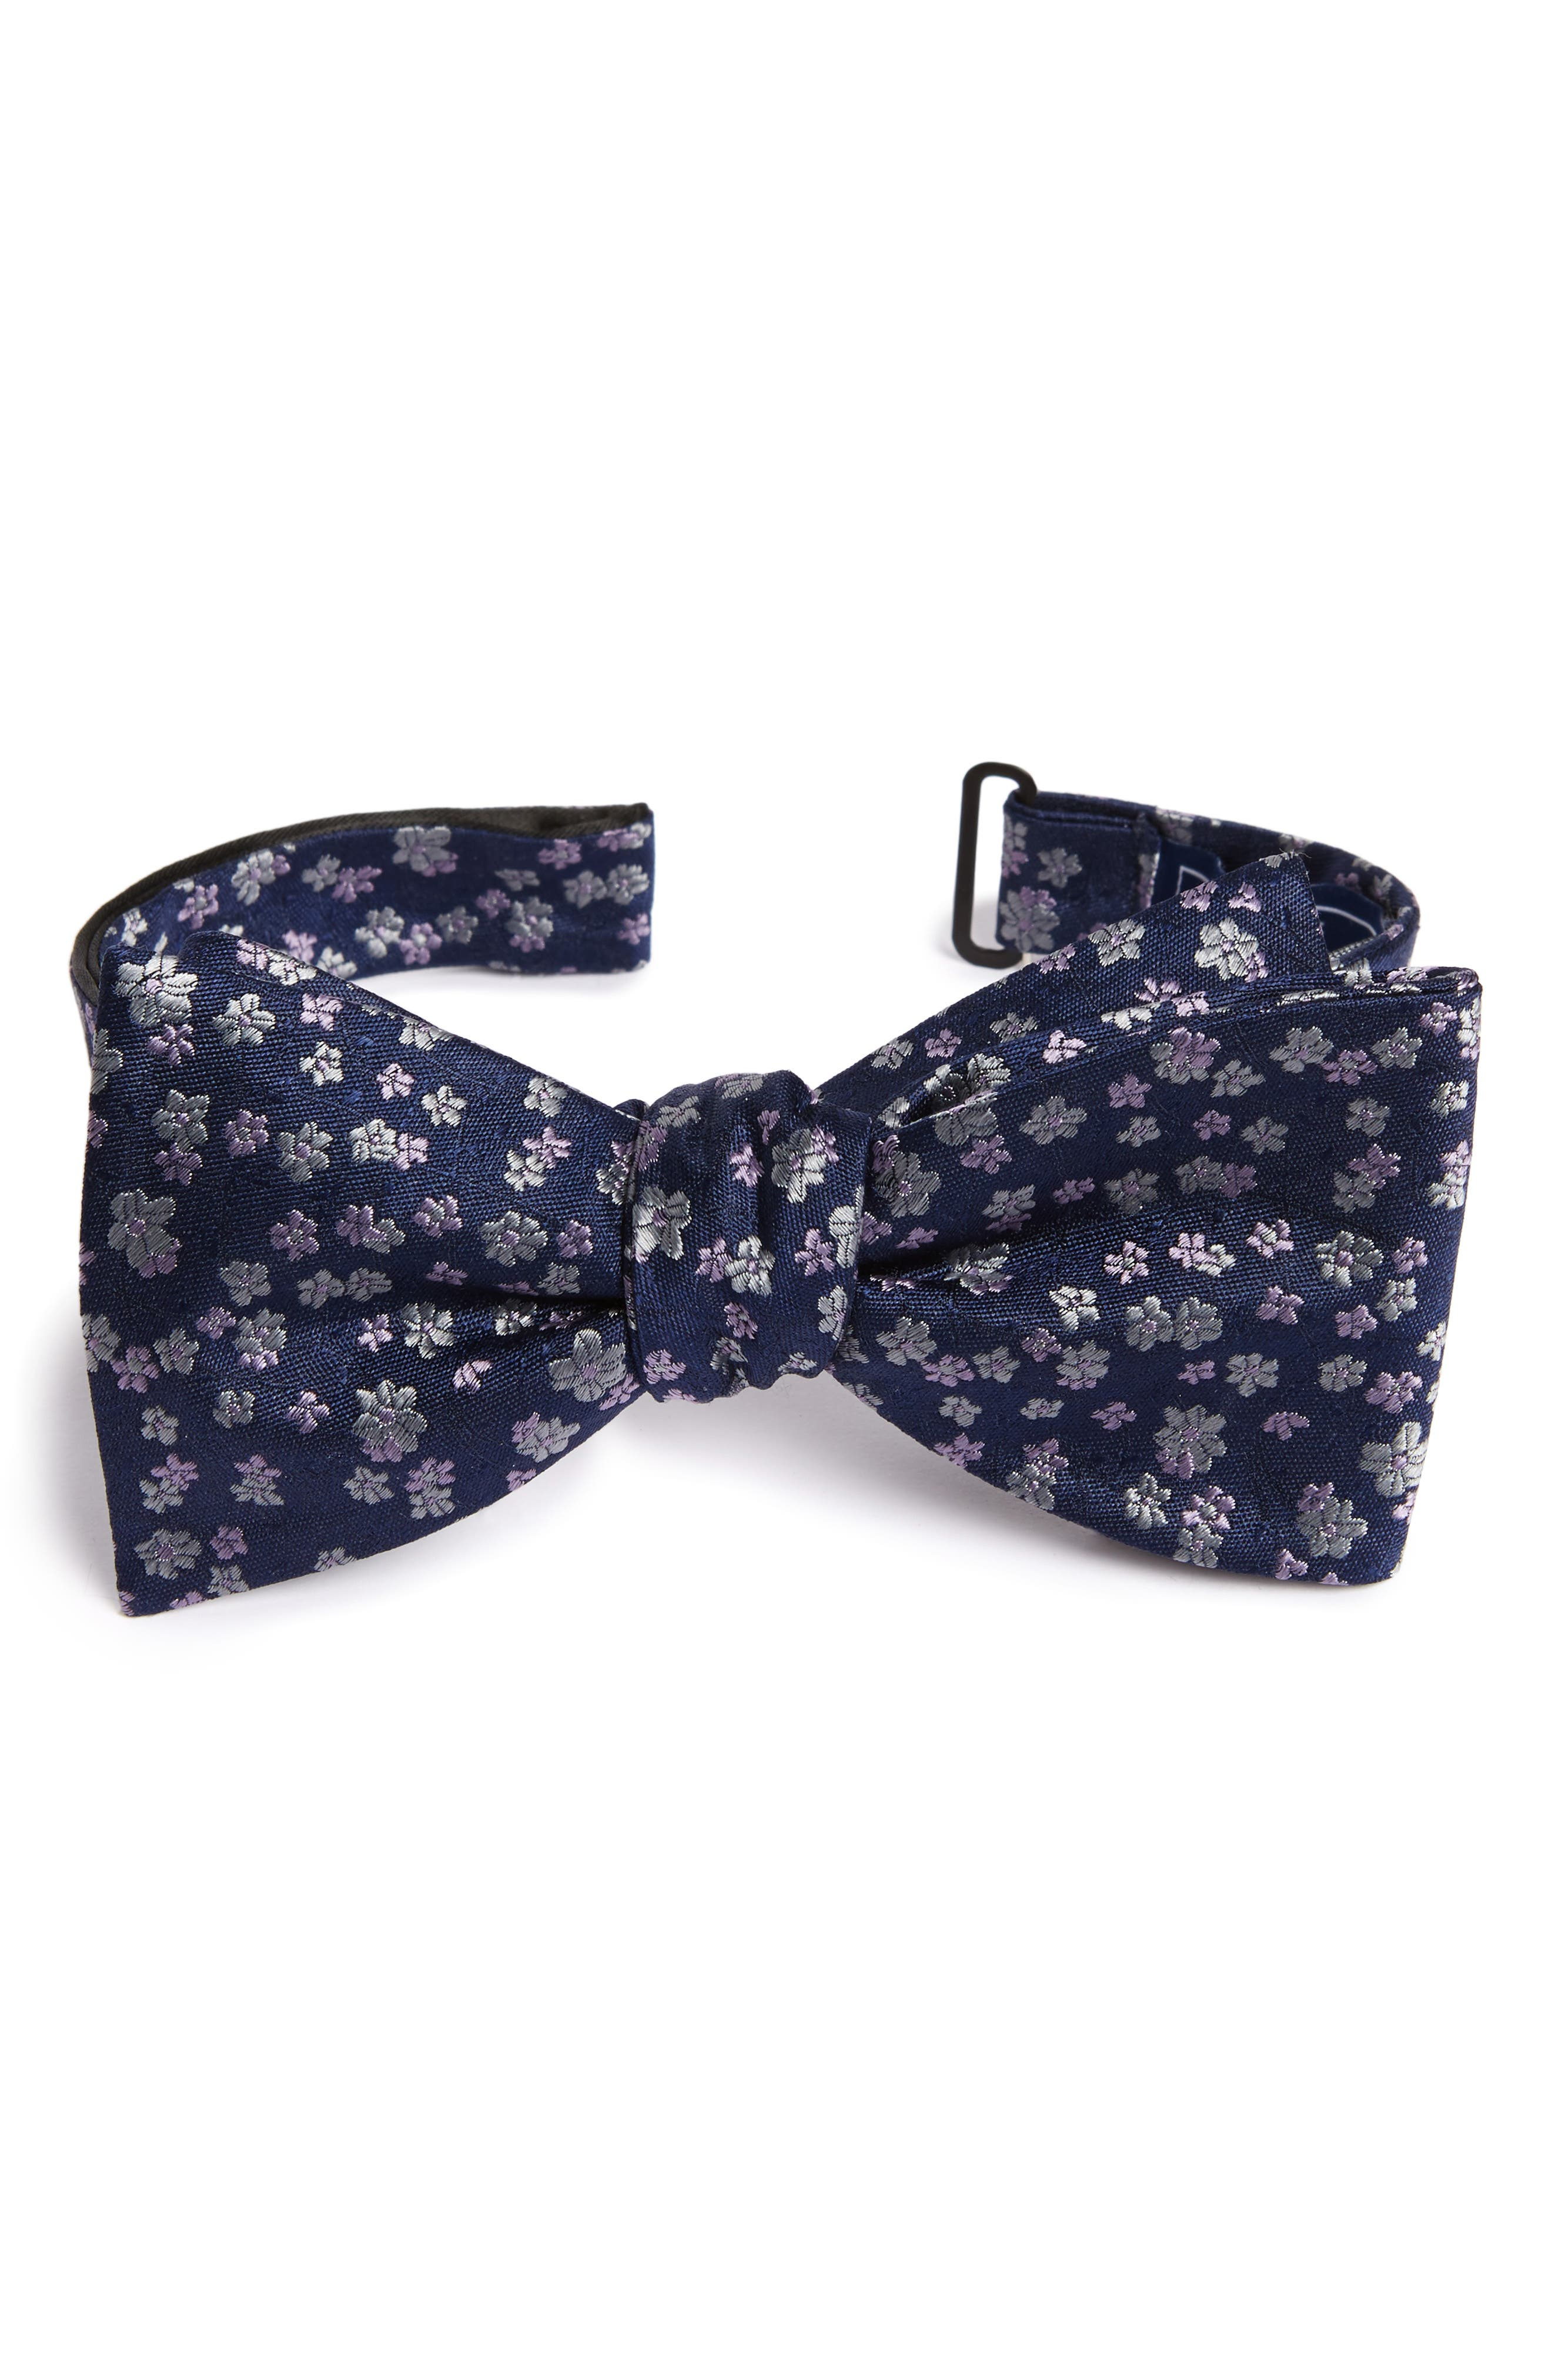 Free Fall Floral Silk Bow Tie,                         Main,                         color, Lavender